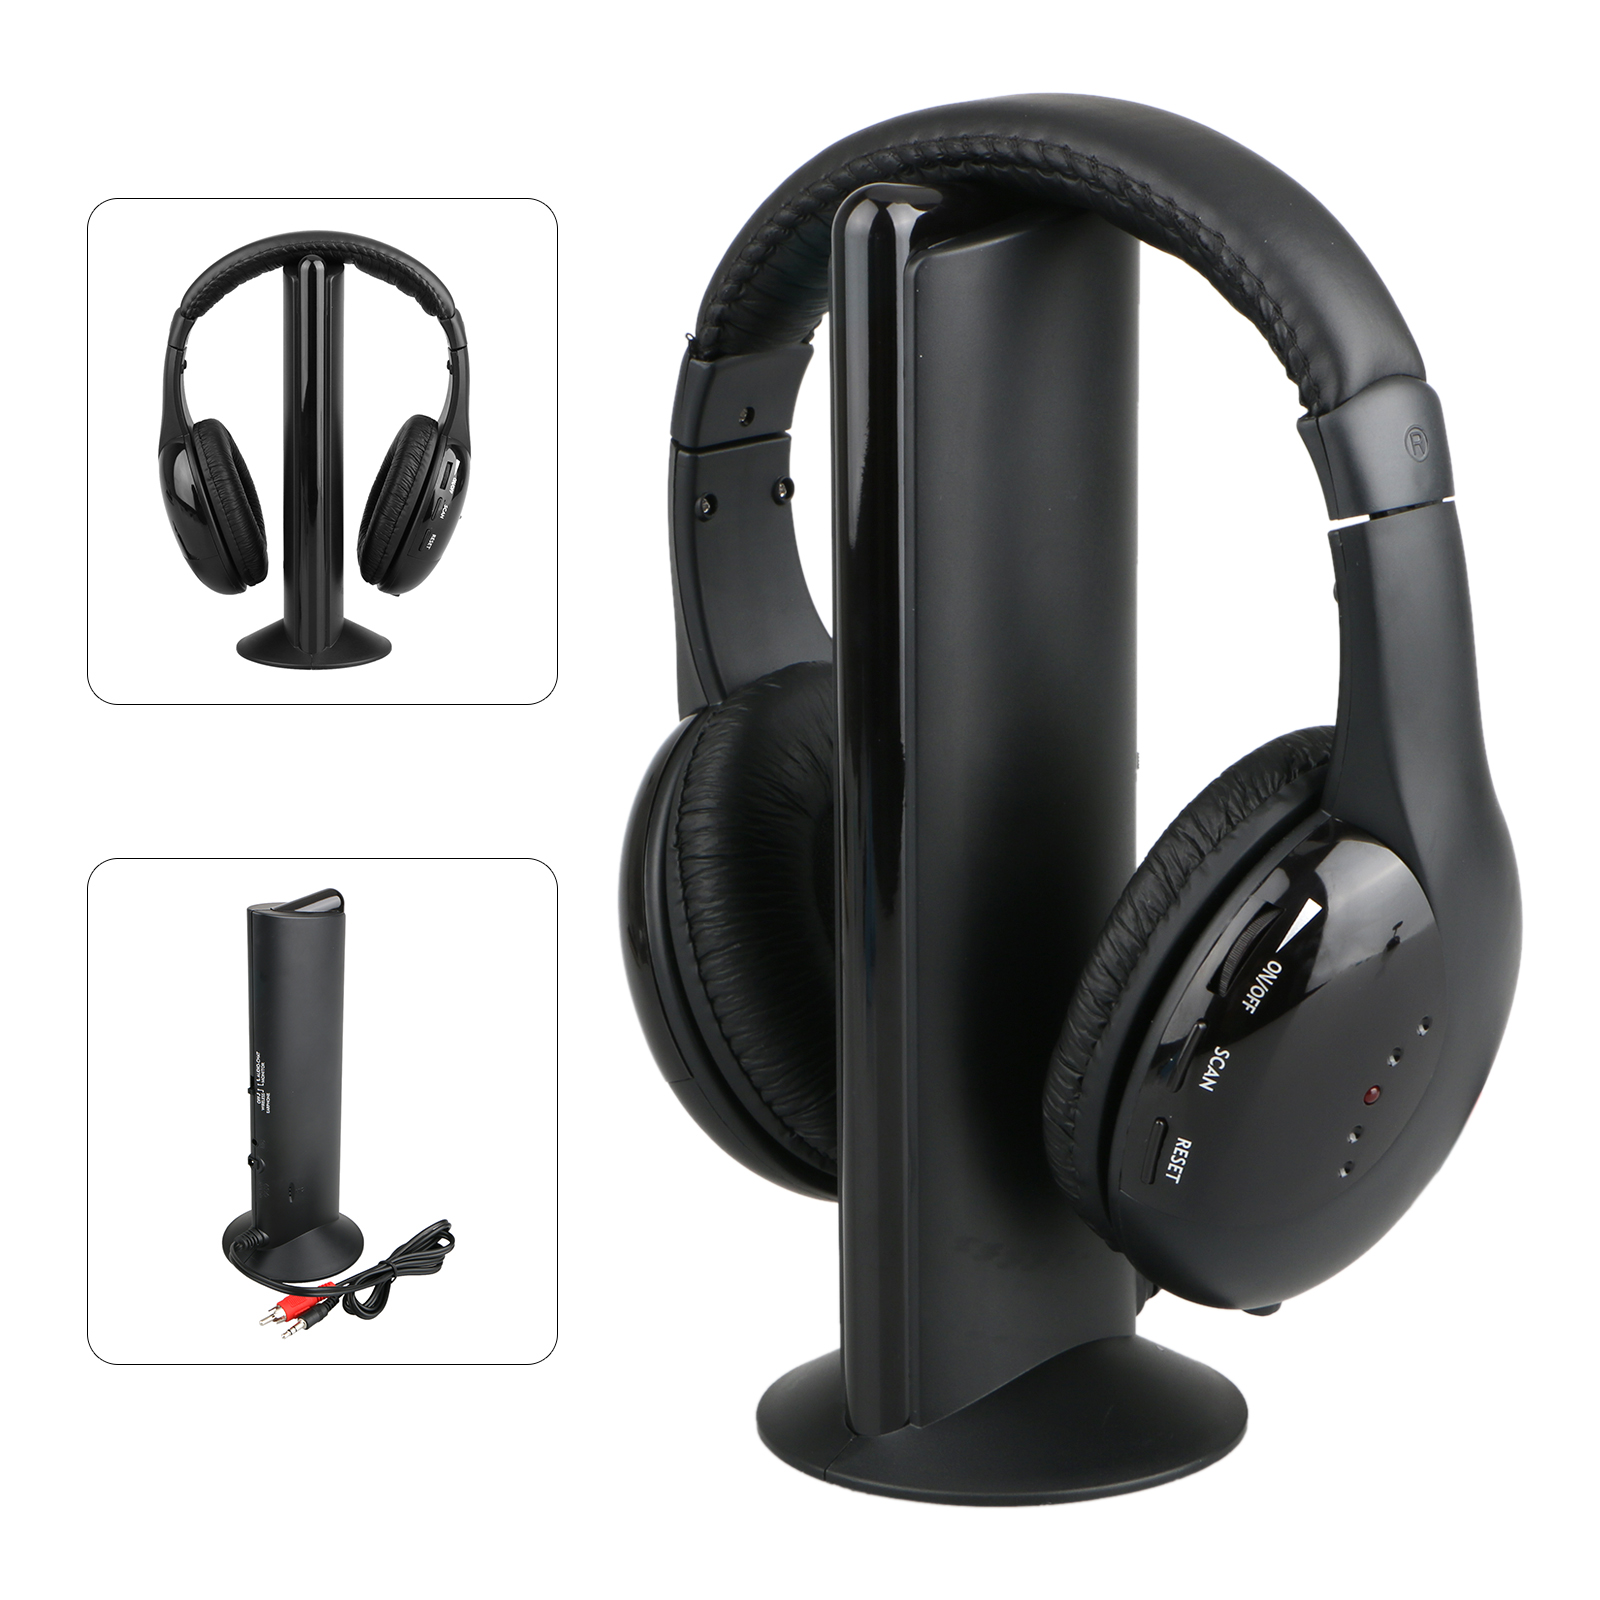 EEEkit Wireless Headphones with RF Radio Mic Holder Stand for Smartphone, Channel TV Cound, PC, Game Player, DVD Player, VCD Player, Audio Device, MP3 Player, and CD Player